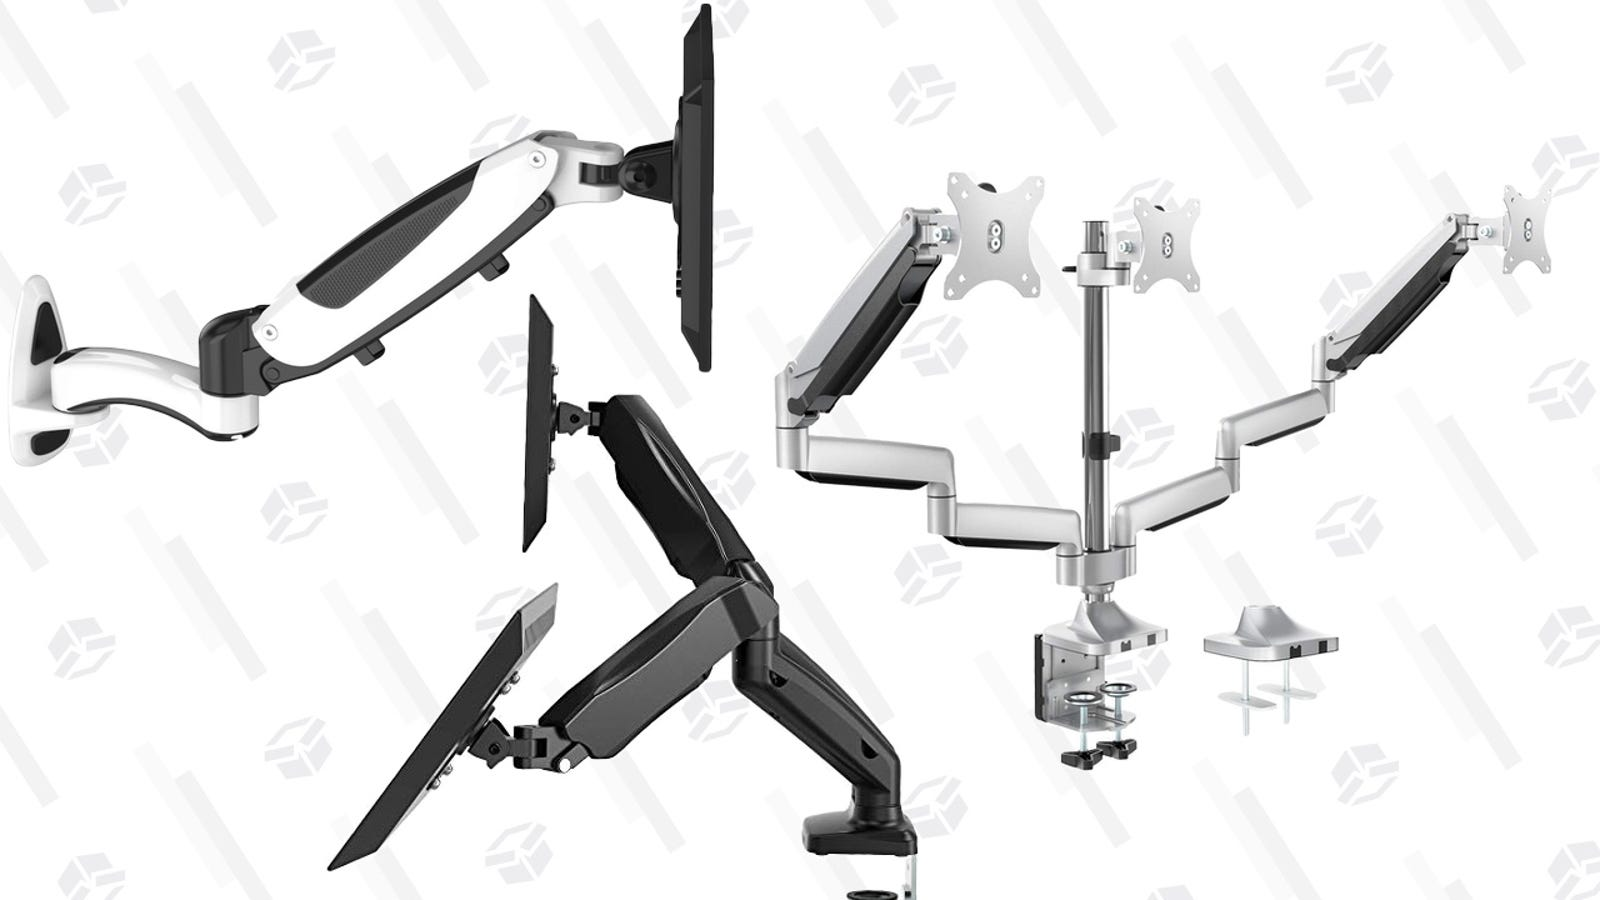 Upgrade Your Desk With An Affordable Monitor Arm (or Two or Three), Today Only